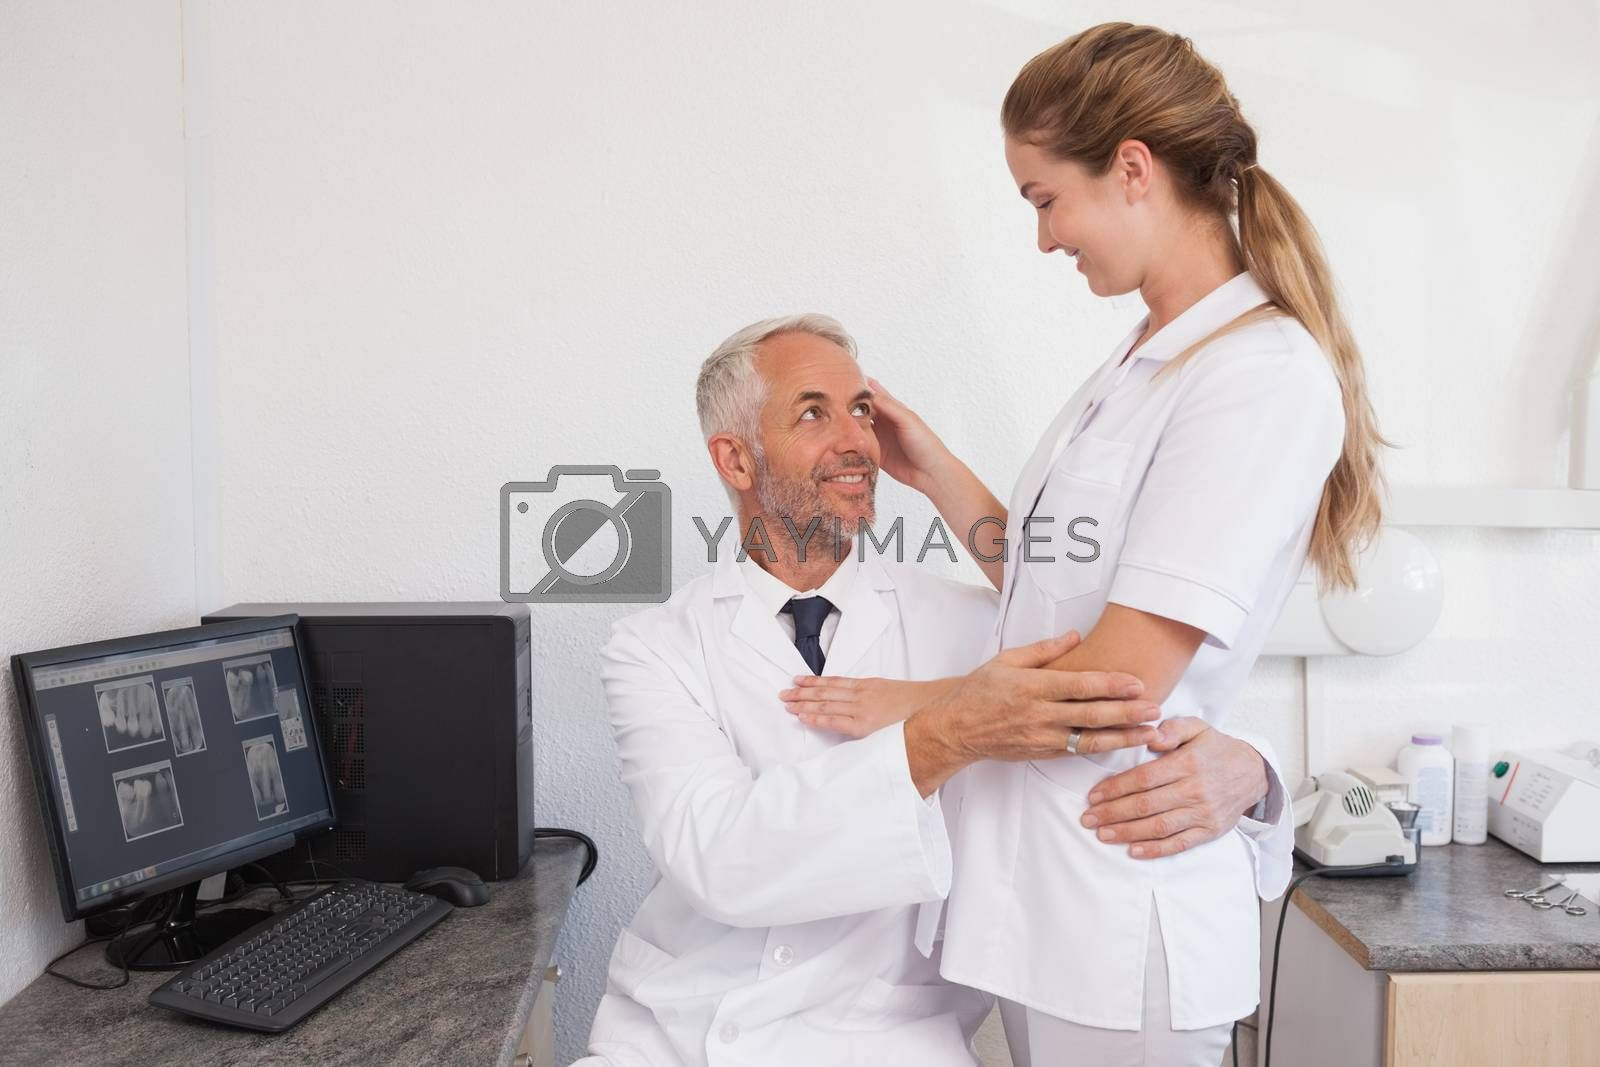 Dentist and dental assistant embracing inappropriately at the dental clinic